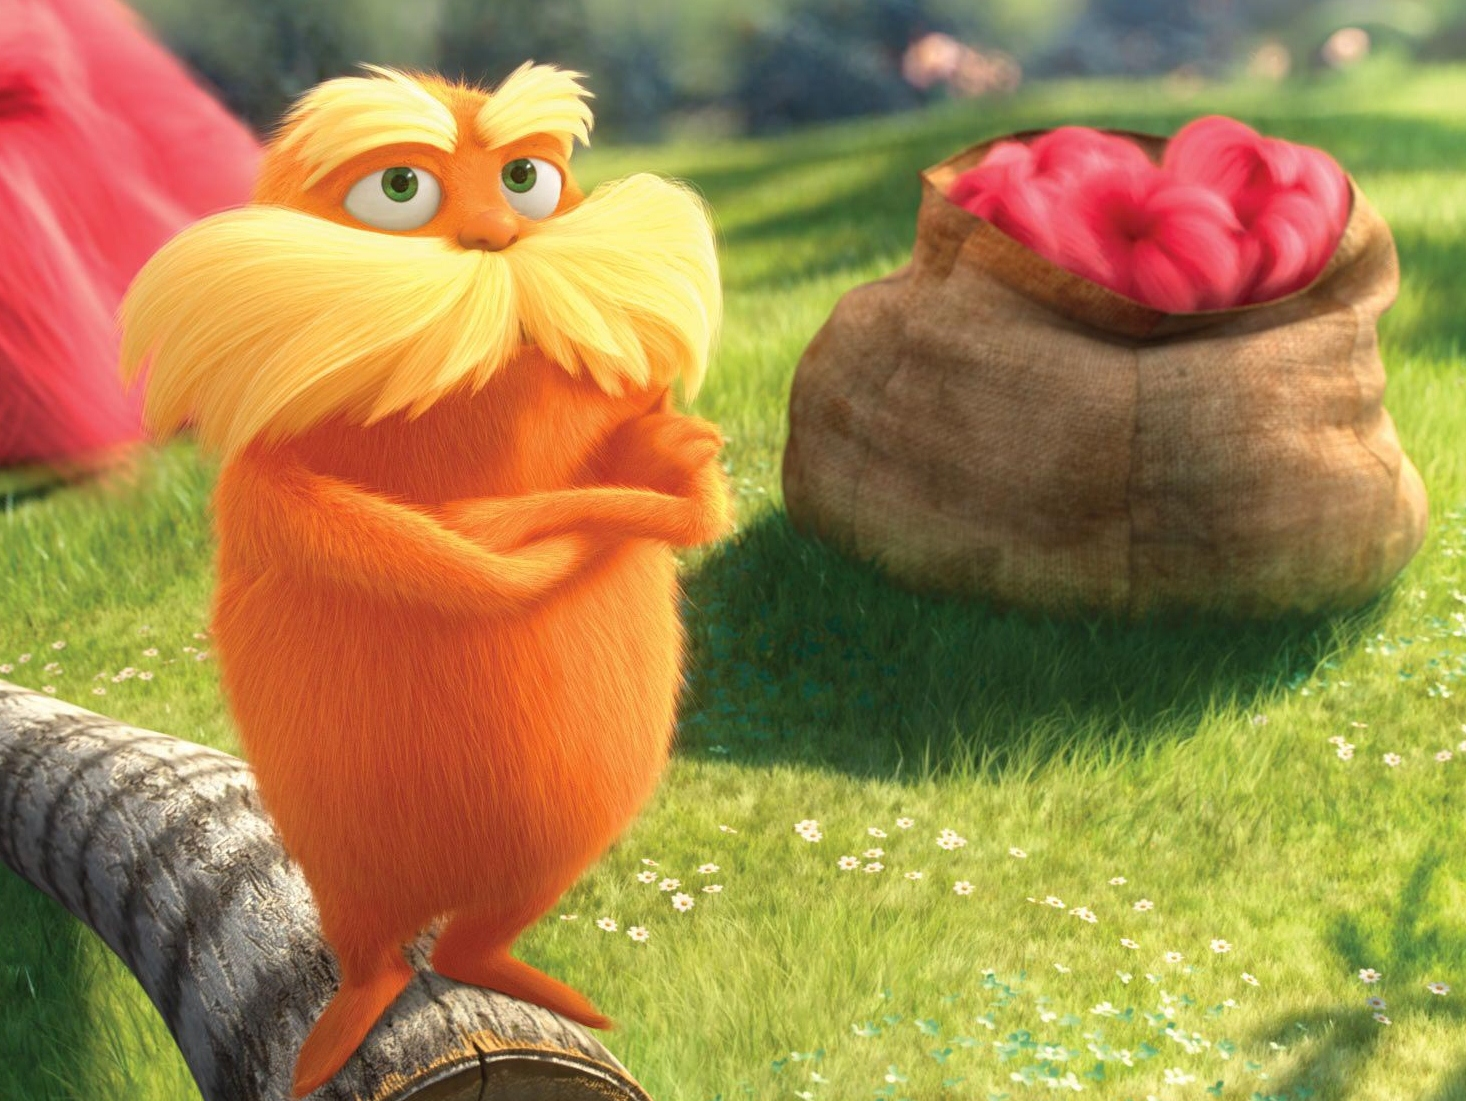 'The Lorax' versus 'Kony 2012': Media Double Standards at Work